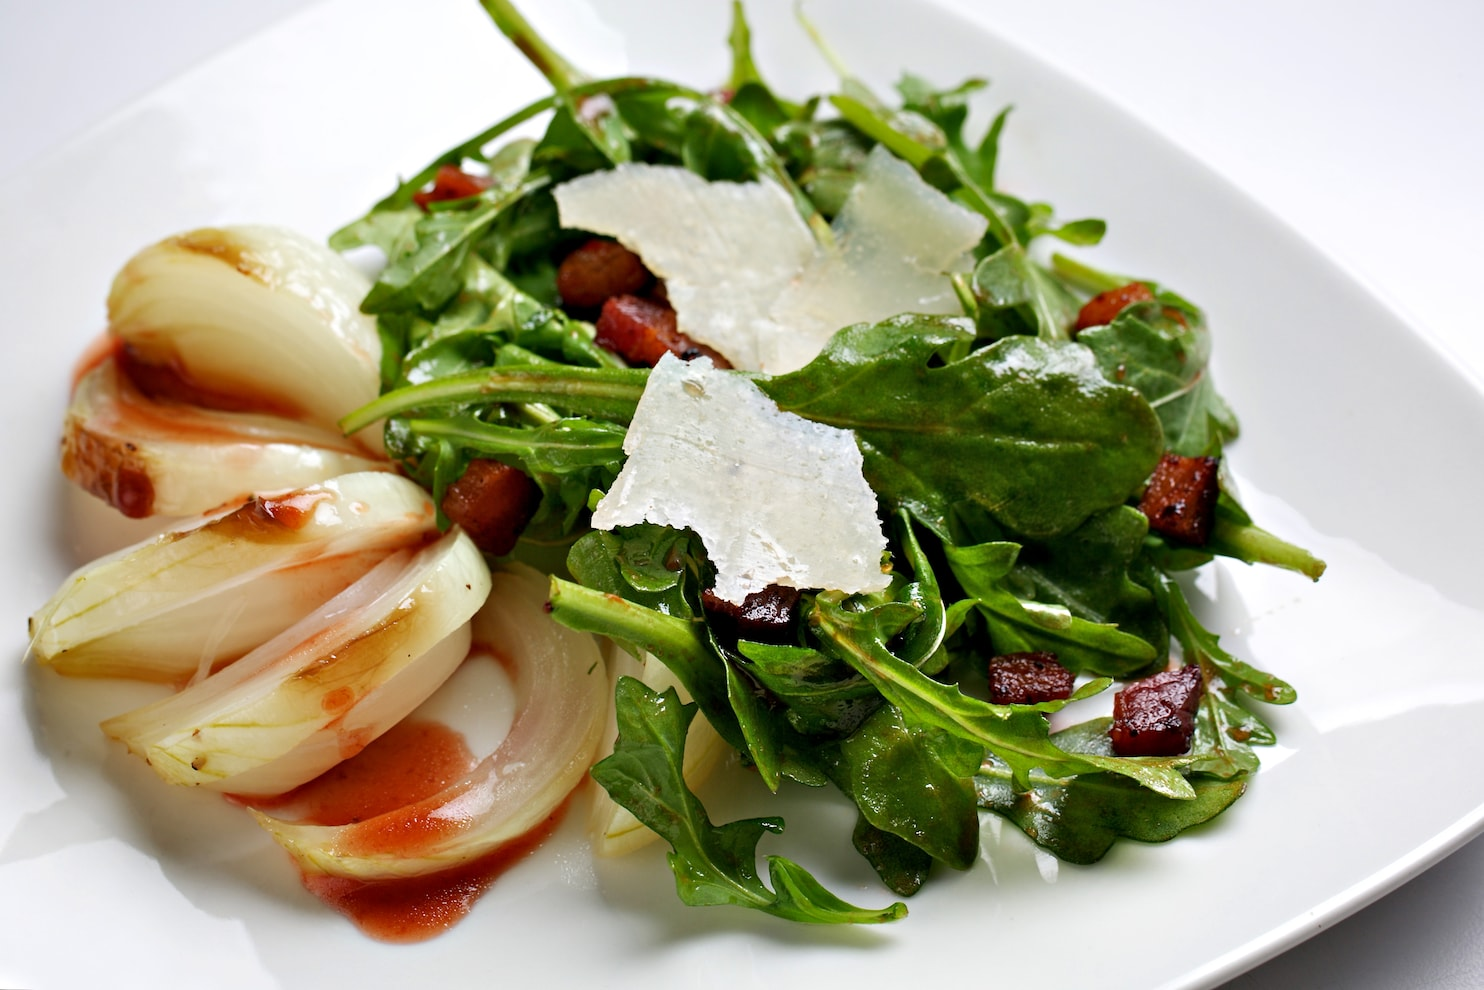 Gastrique Cuisine Roasted Young Onions With Strawberry Gastrique Bacon And